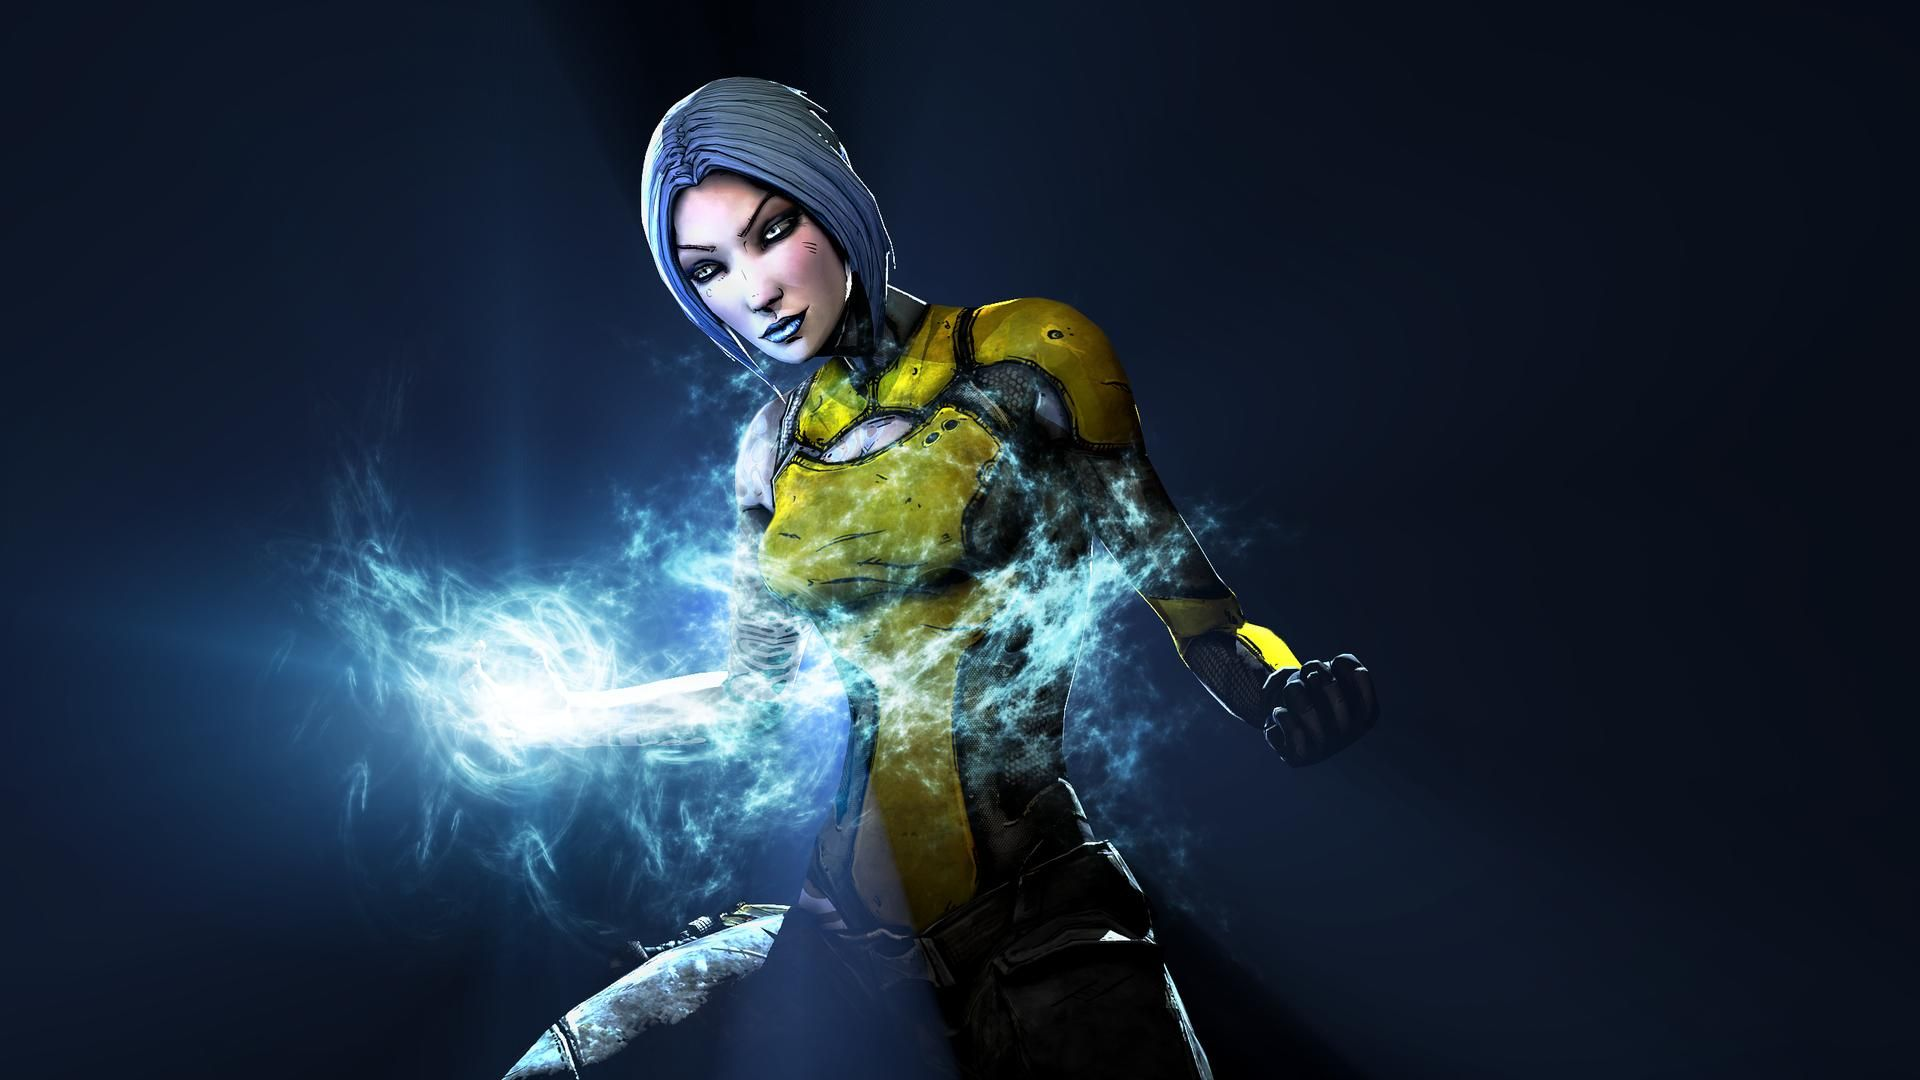 Borderlands 2 wallpapers 1920x1080 wallpaper cave all borderlands 2 wallpapers 1920x1080 wallpaper cave voltagebd Image collections